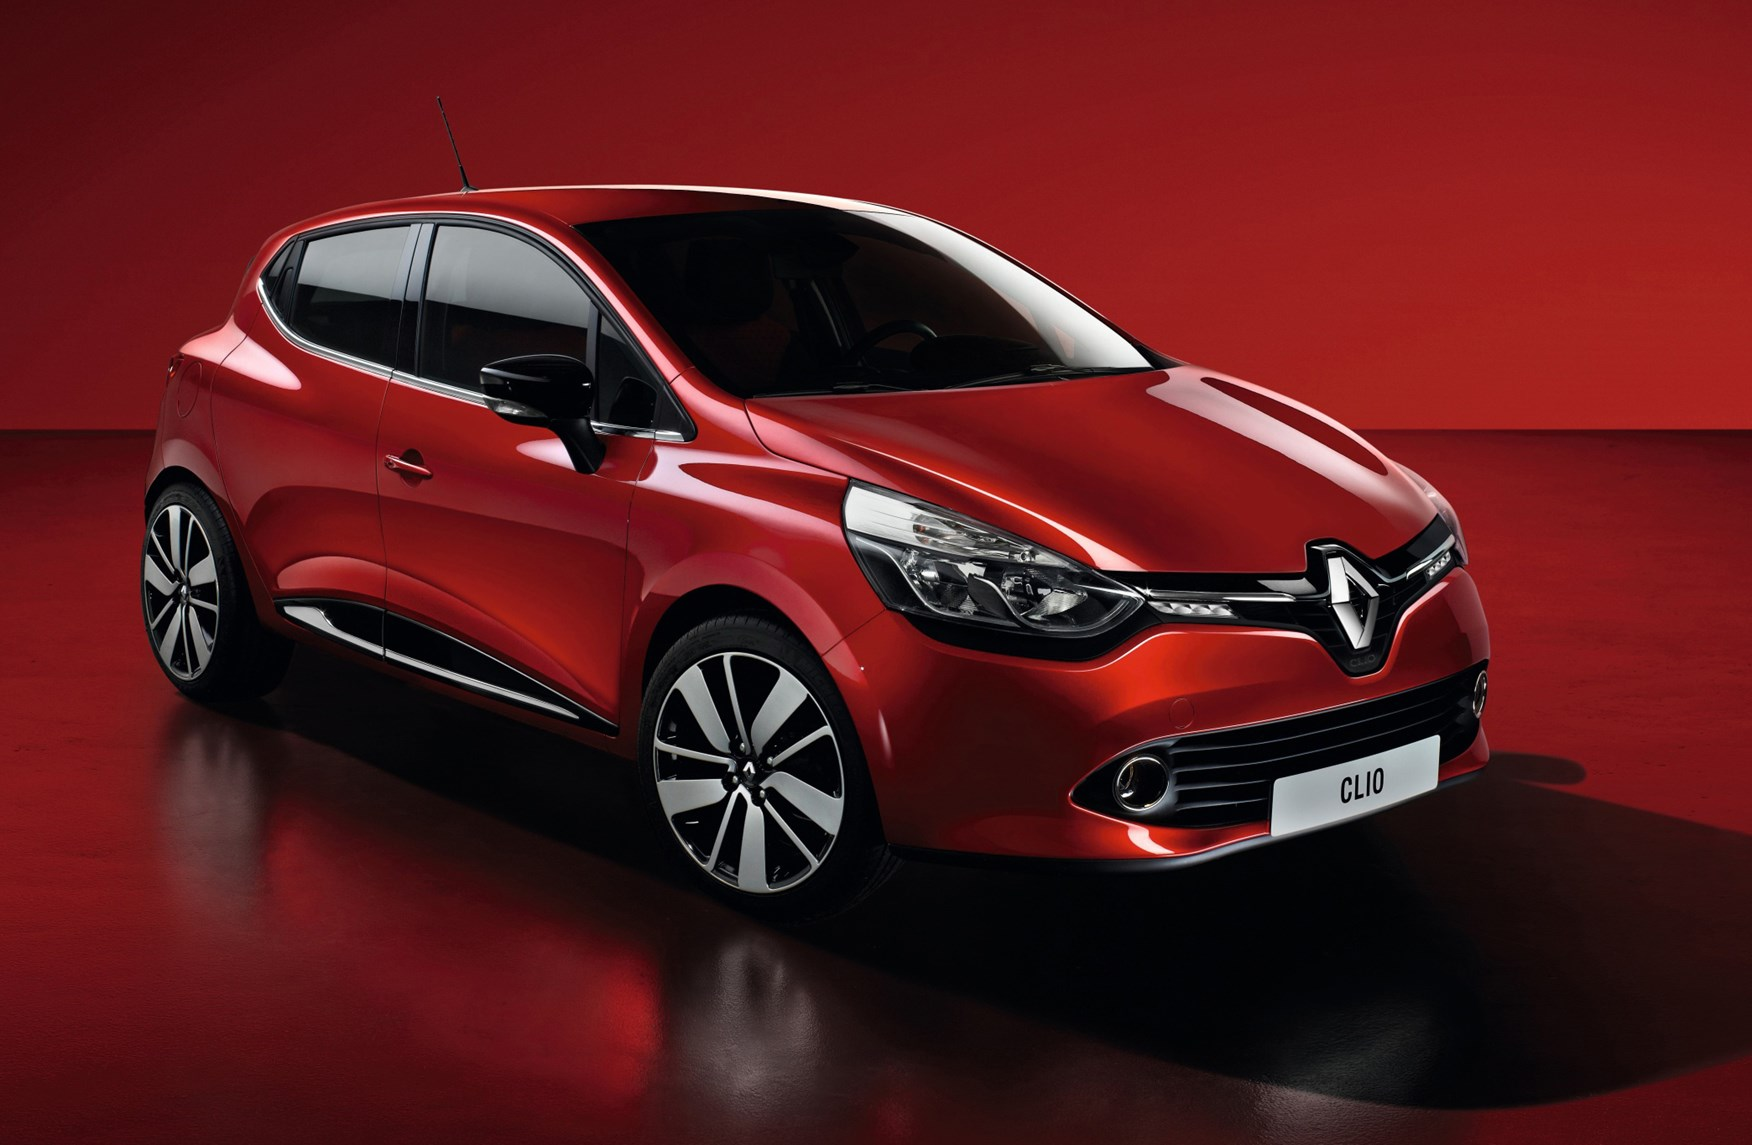 renault clio hatchback review 2012 parkers. Black Bedroom Furniture Sets. Home Design Ideas